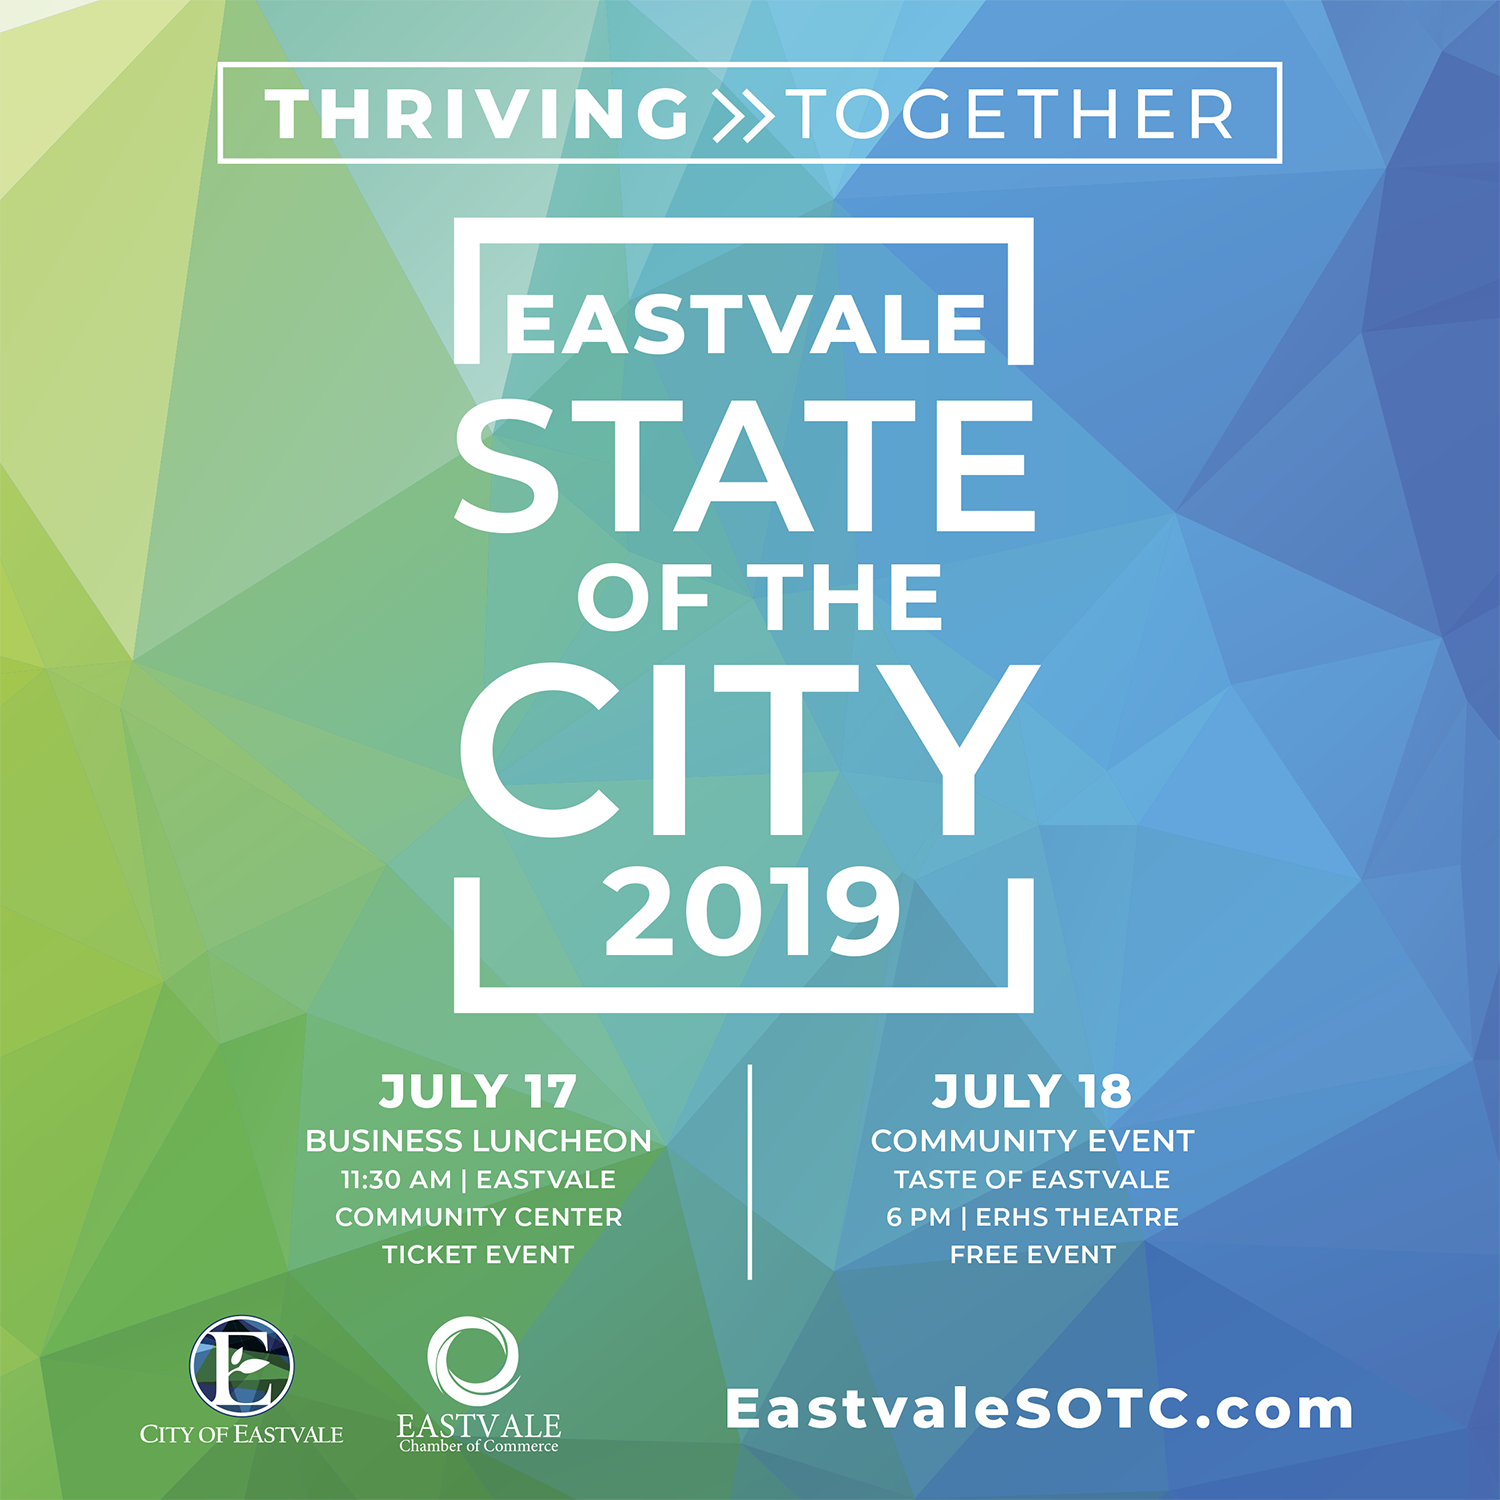 The 8th Annual Eastvale State of the City is Almost Here!